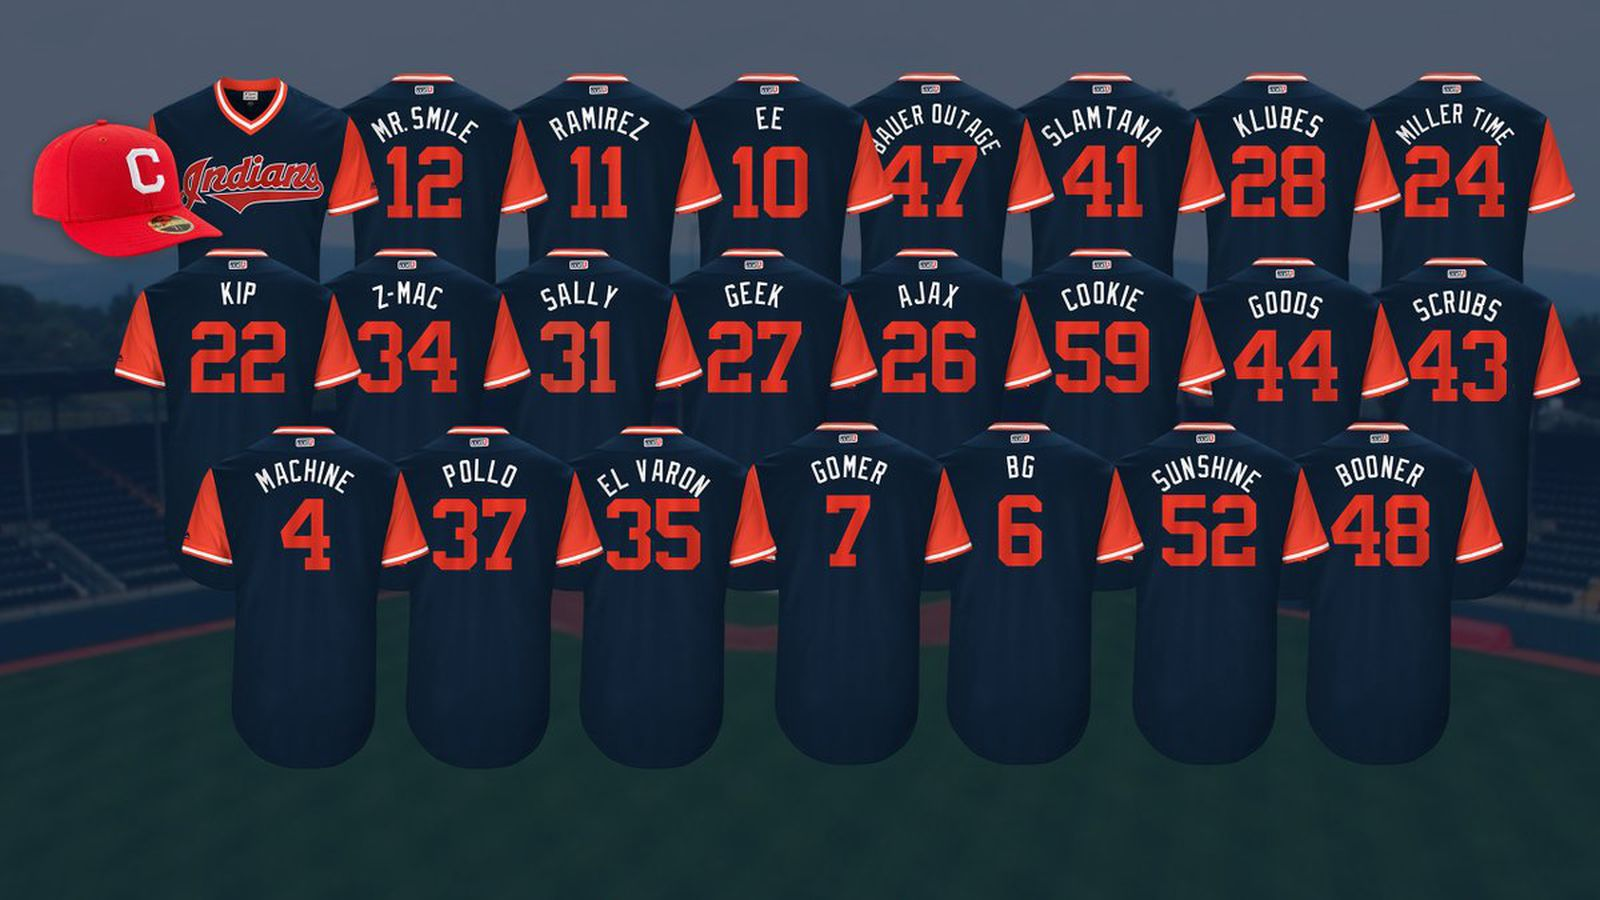 finest selection 4e5d9 44f87 Grading the Indians' Player's Weekend nickname choices ...